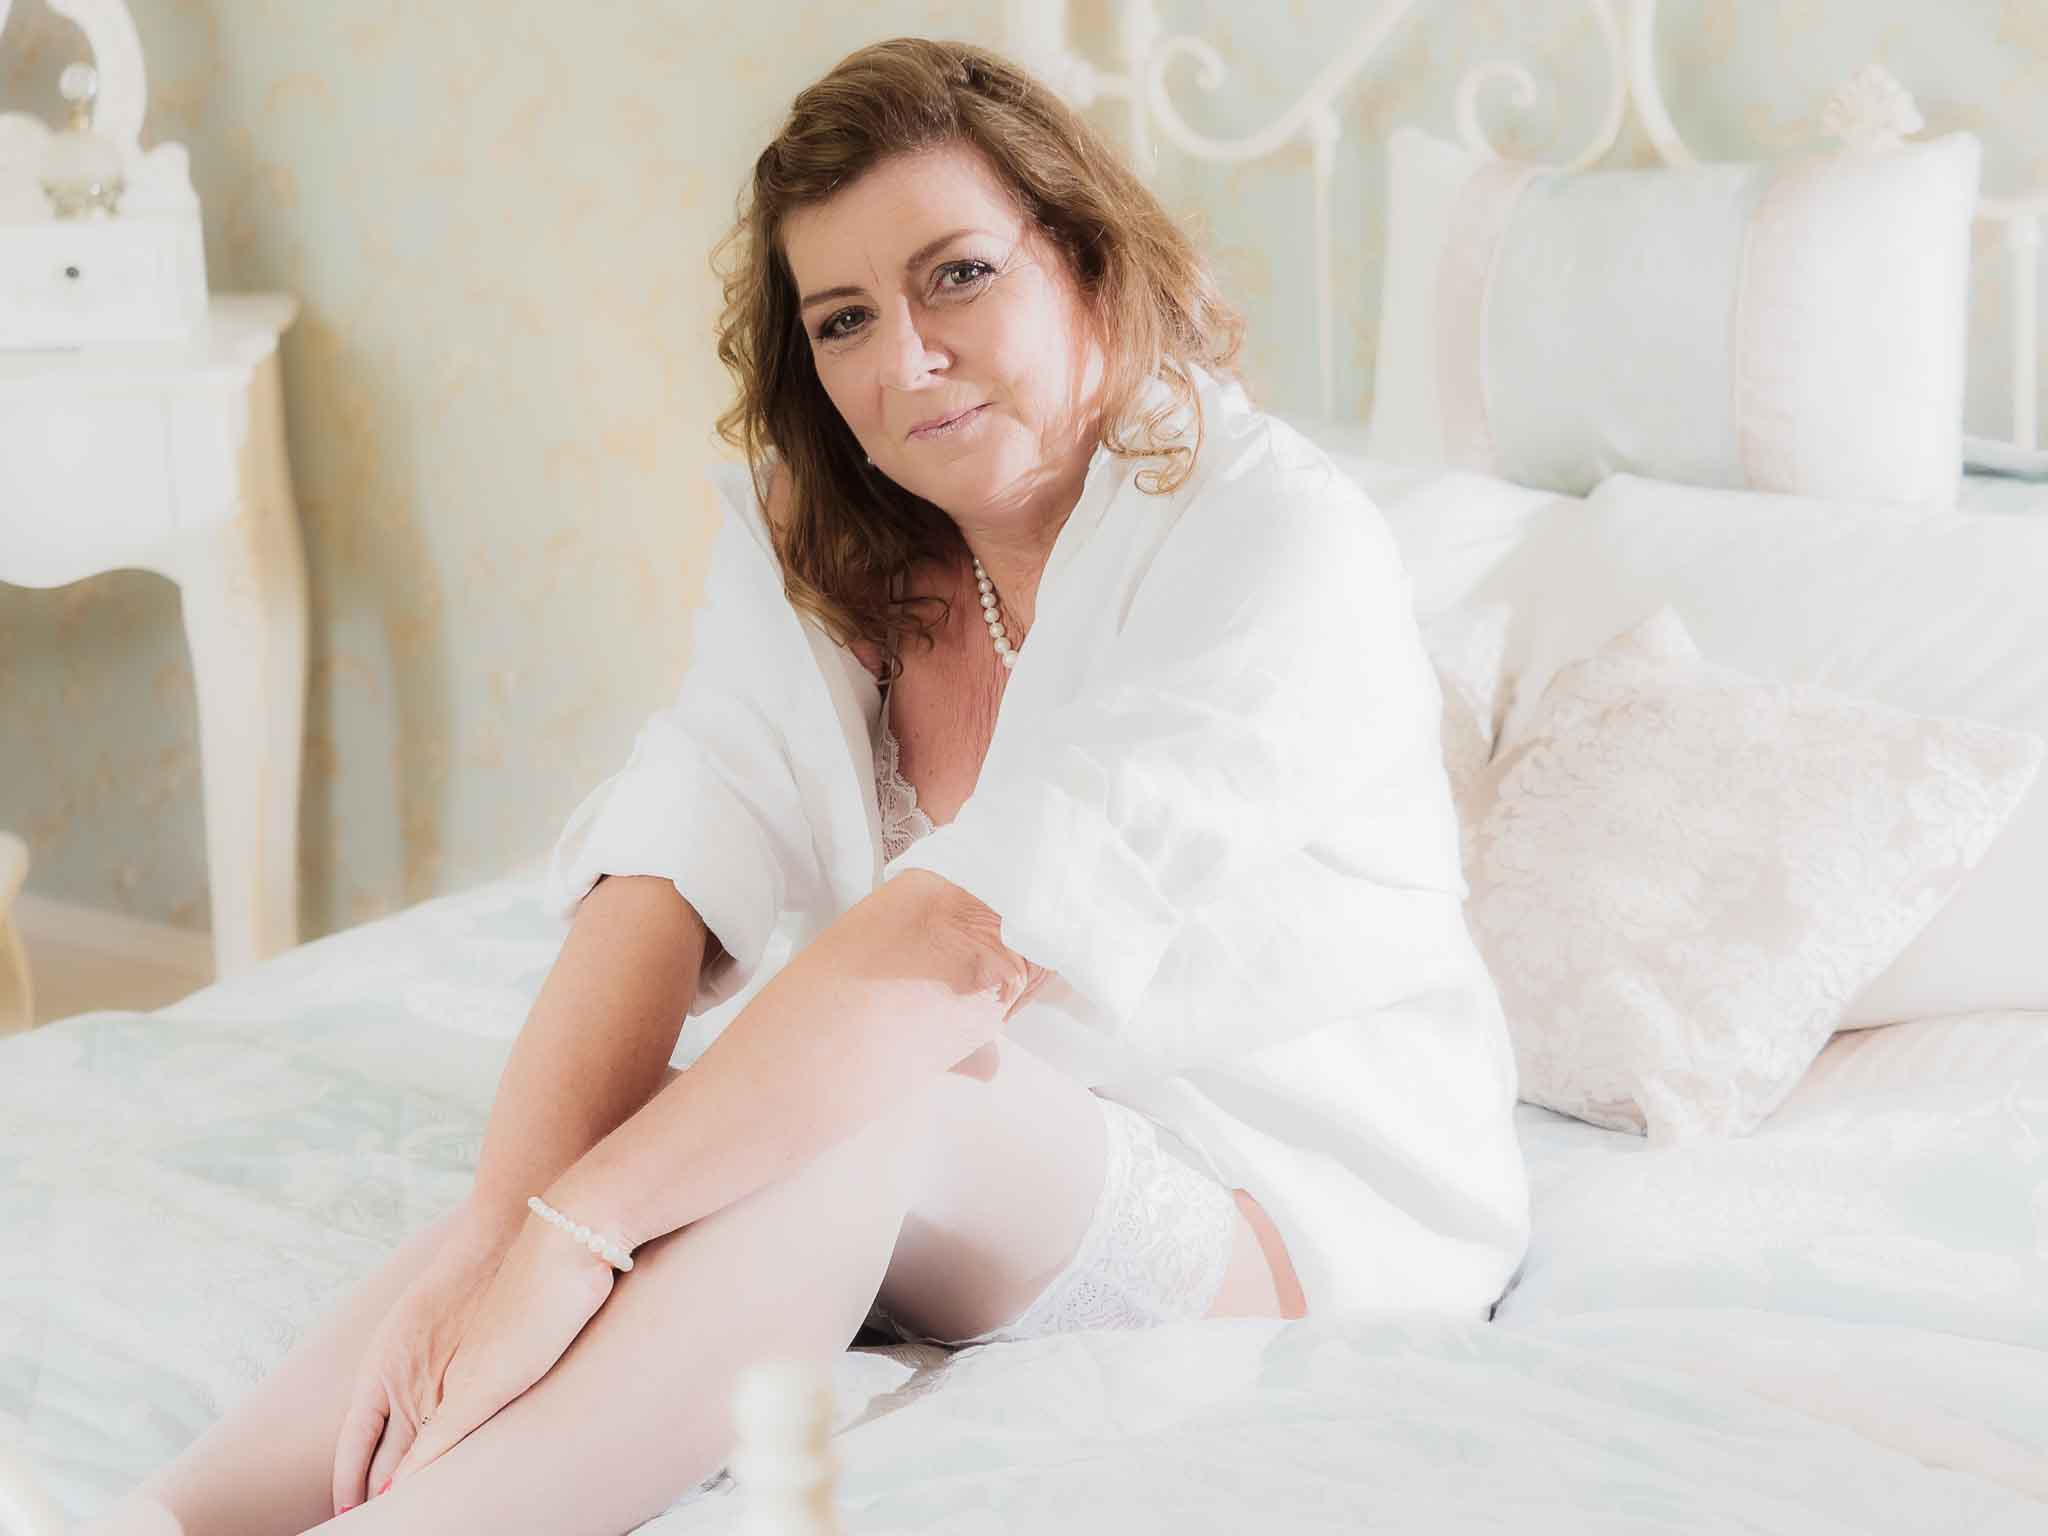 Boudoir photoshoot wearing white shirt, what to wear at a boudoir session